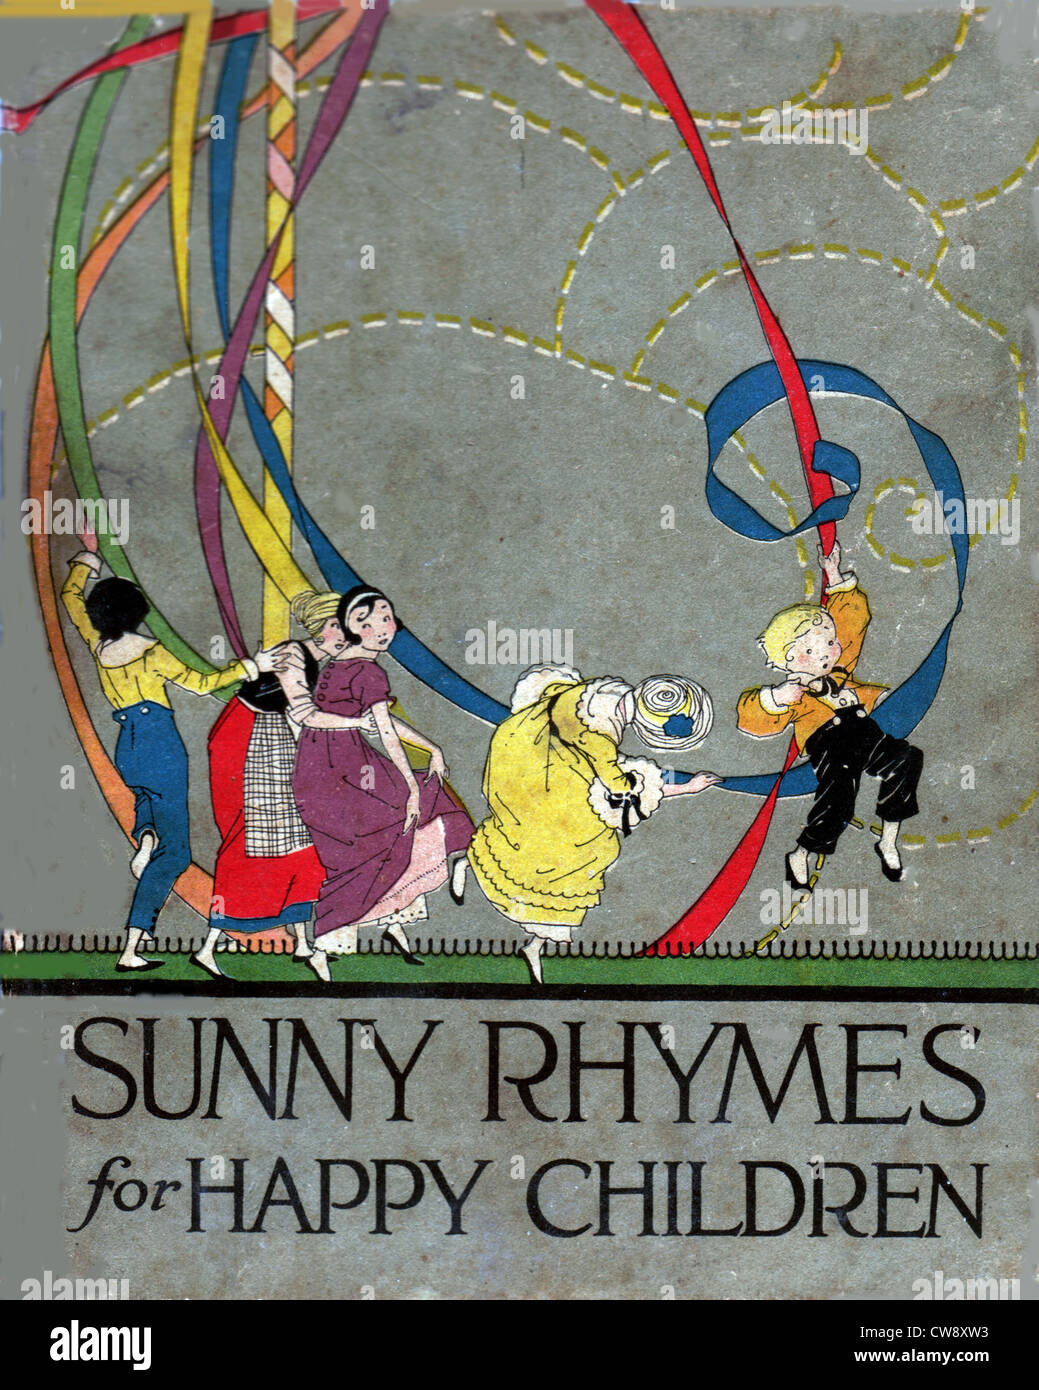 Rhymes Olive Beaupre Miller: 'Sunny rhymes happy children' - Stock Image